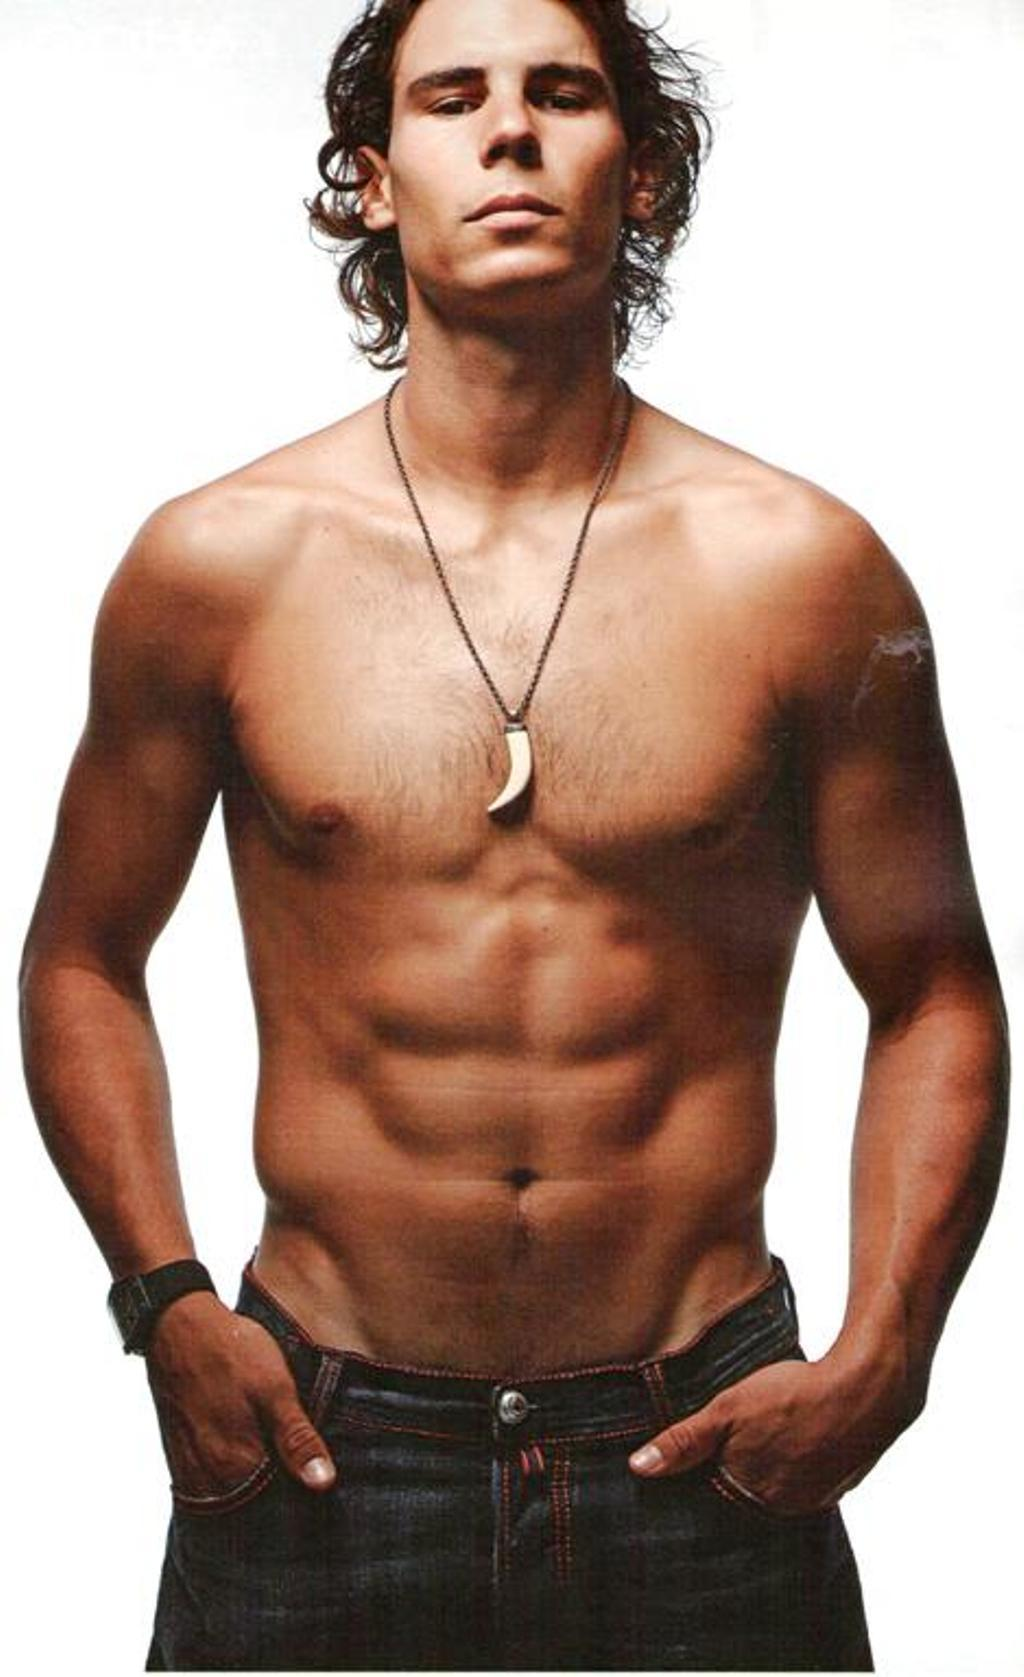 Nadal, making a matriarchal bargain by taking his shirt off ...